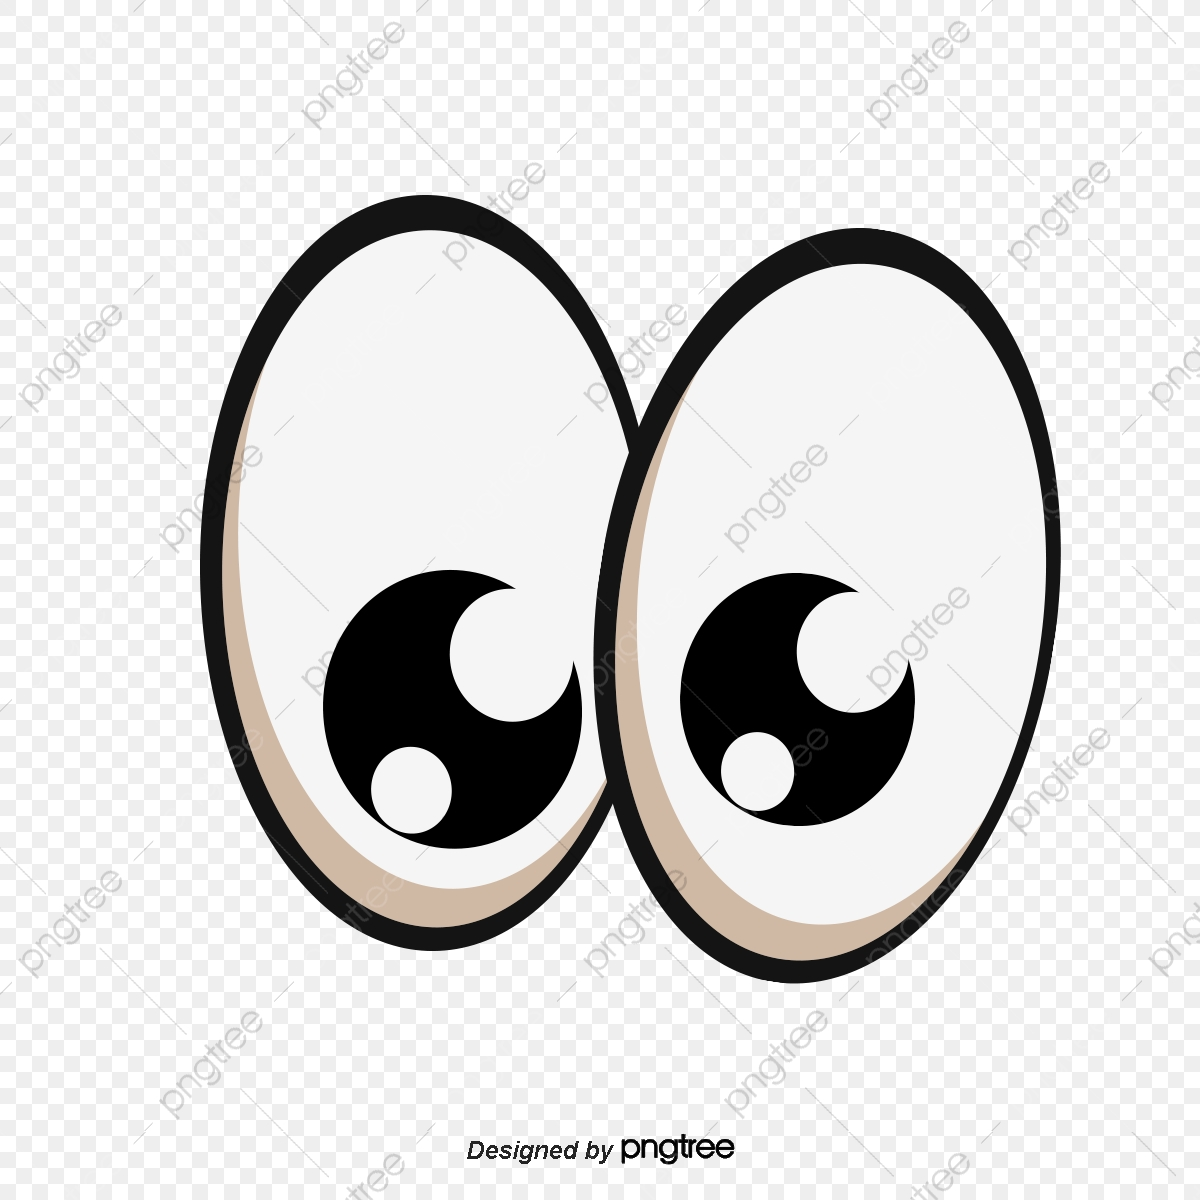 Hand Painted Cartoon Eyes Cartoon Eye Cartoon Eyes Png